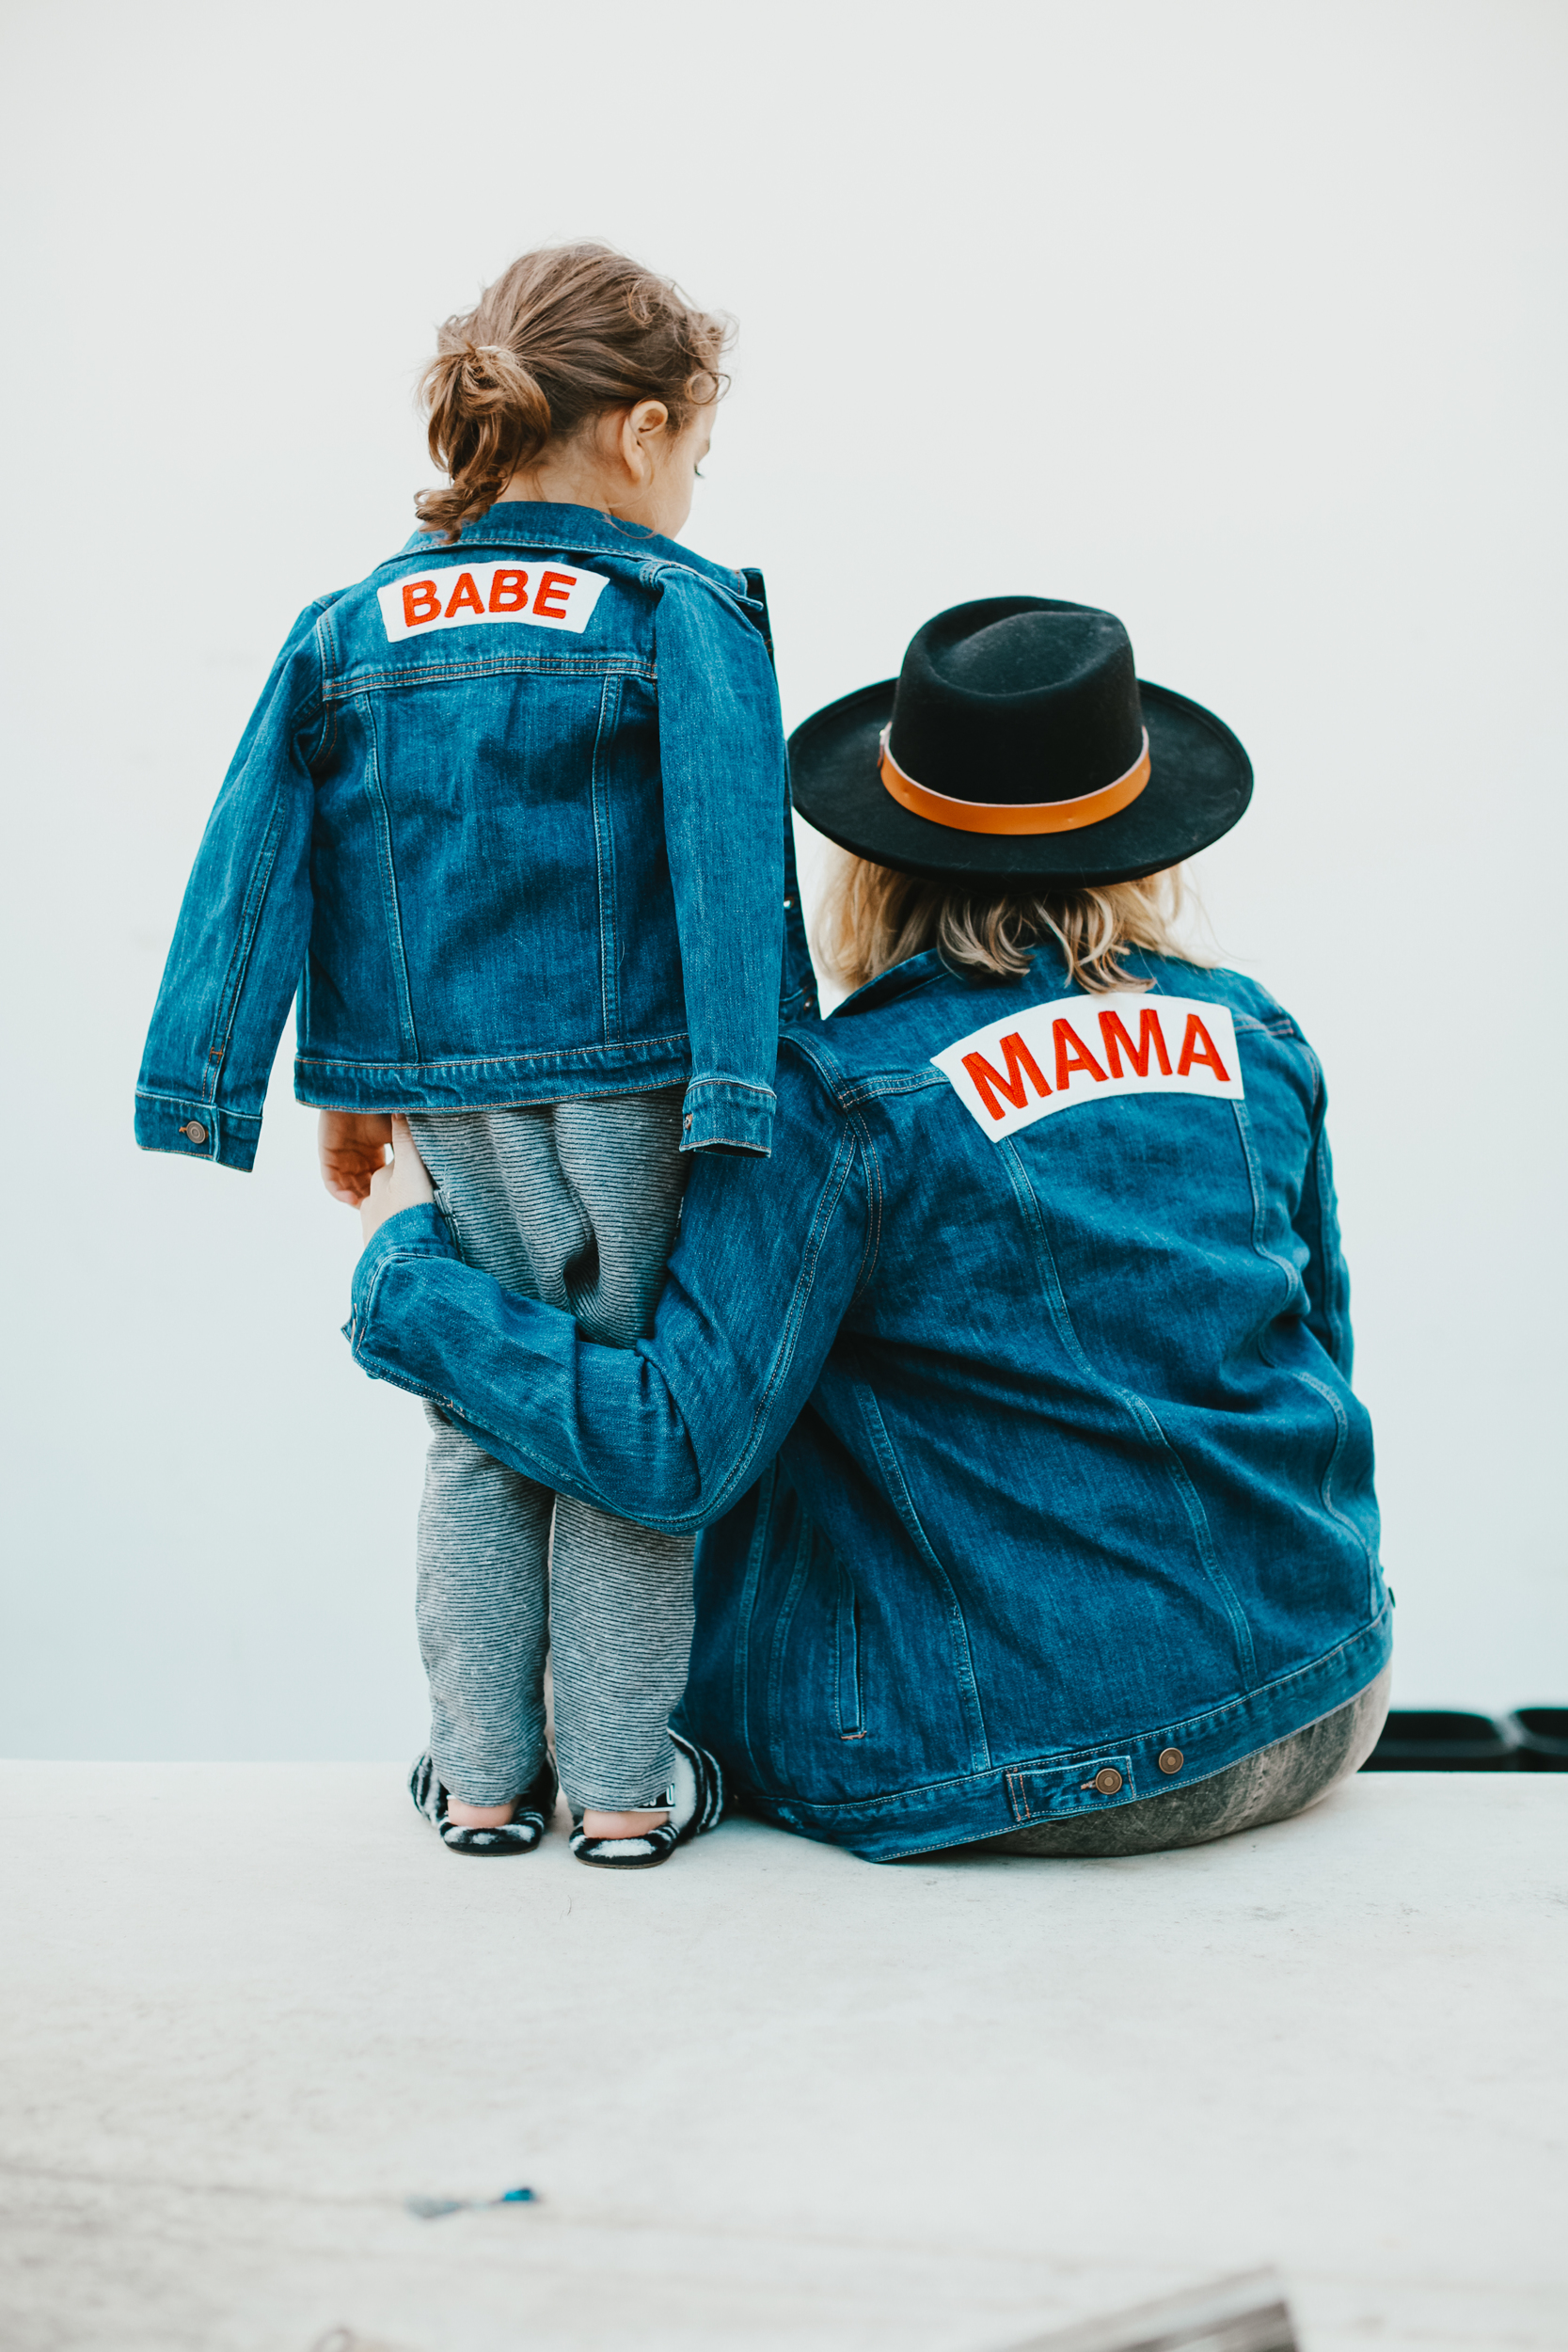 mom and son in matching jackets